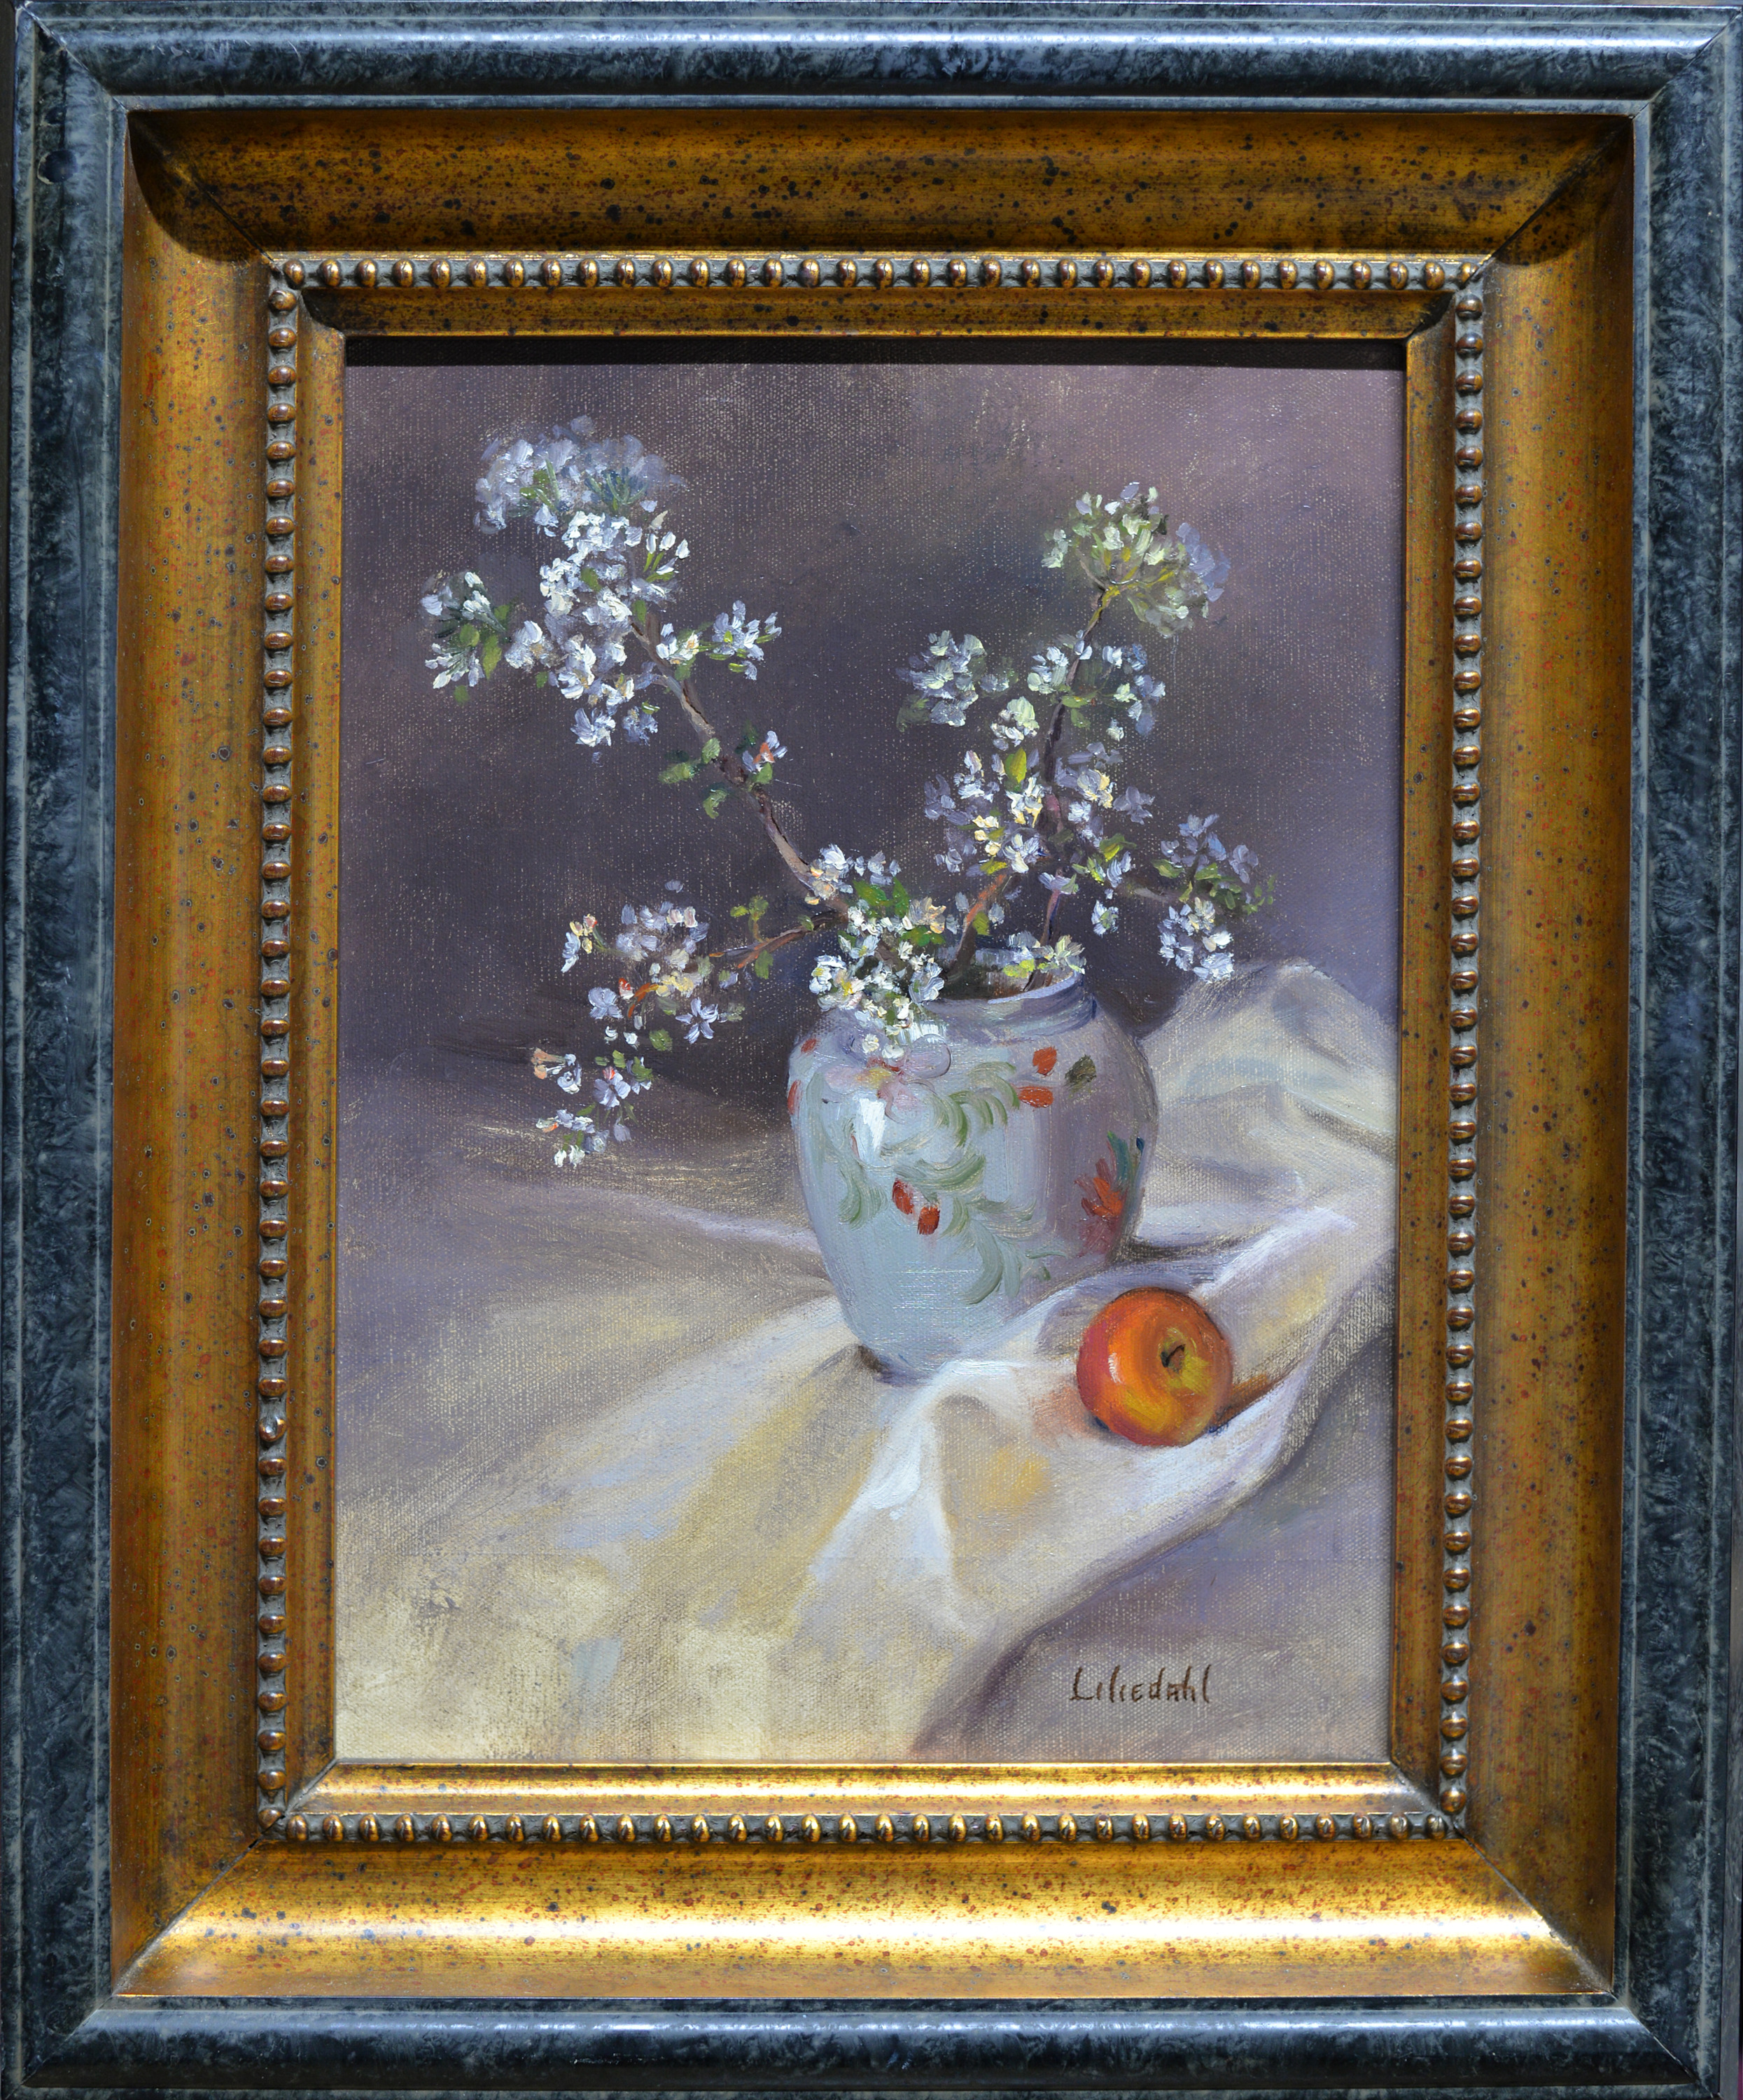 Apple blossoms and apple framed d610 gp7kn2